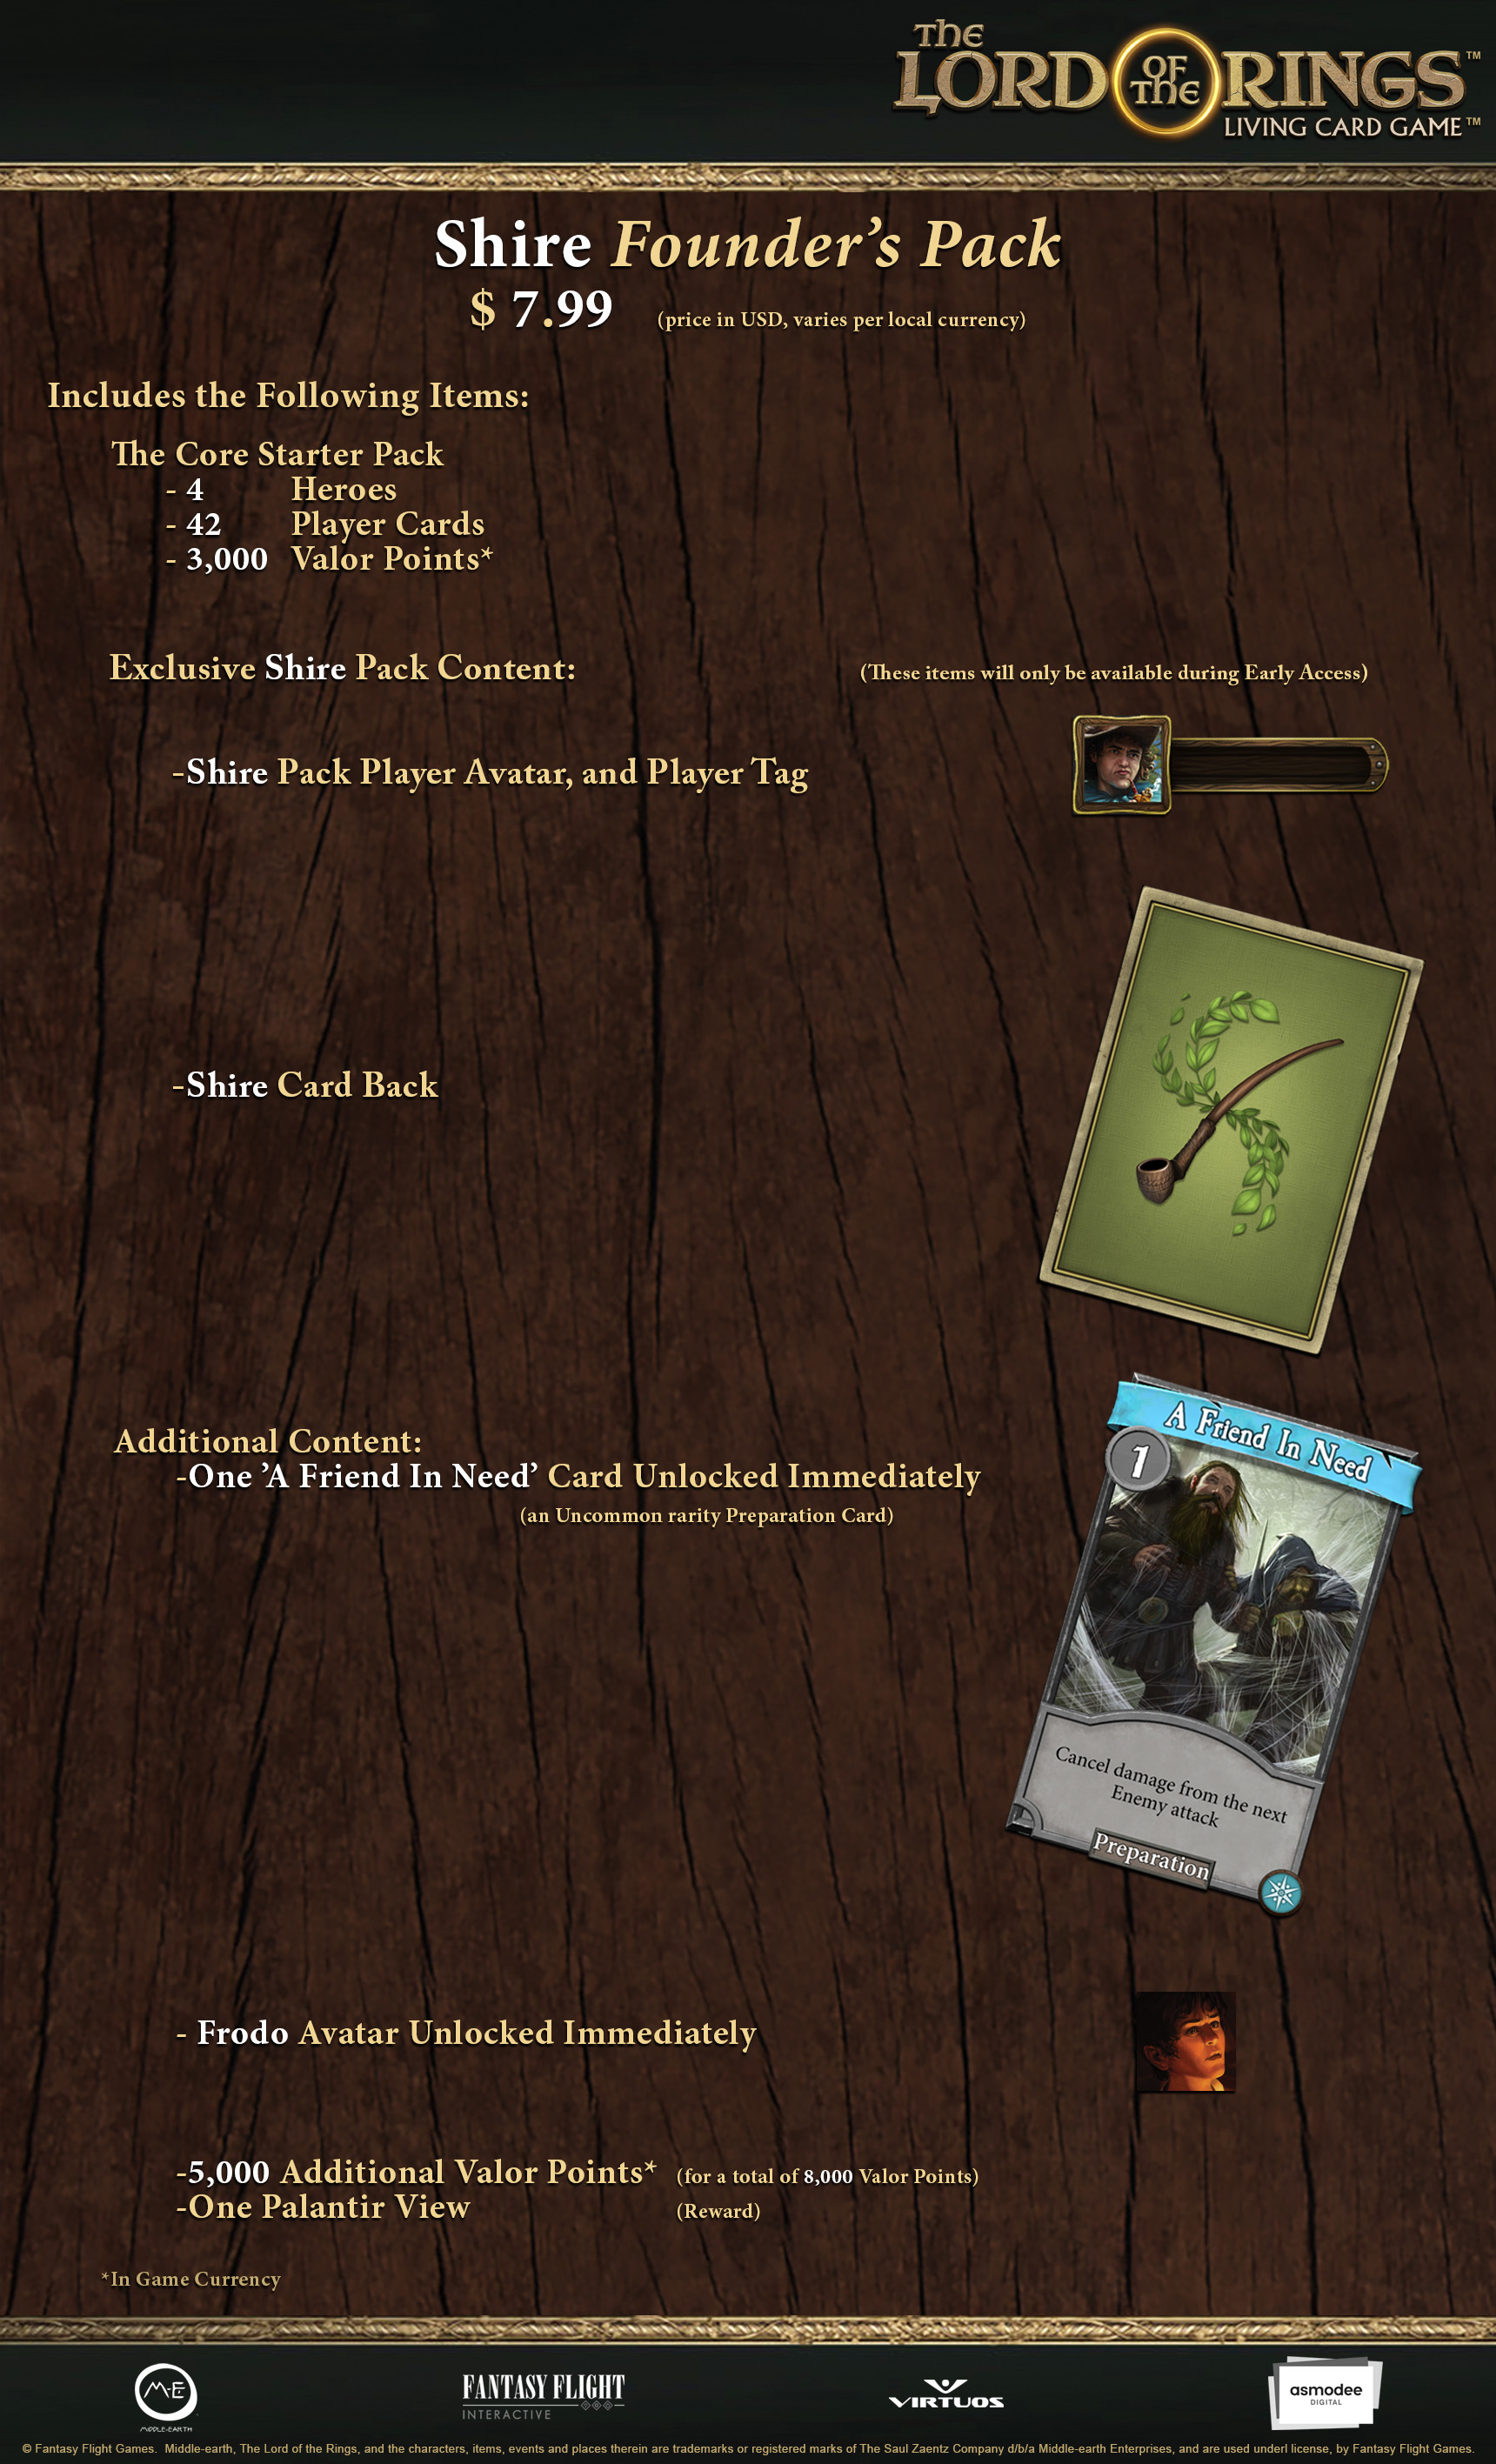 Lord of the Rings : Living Card Game Online - Page 5 0bc6027dc30173d080647a4ba82e7f8c0212bcac